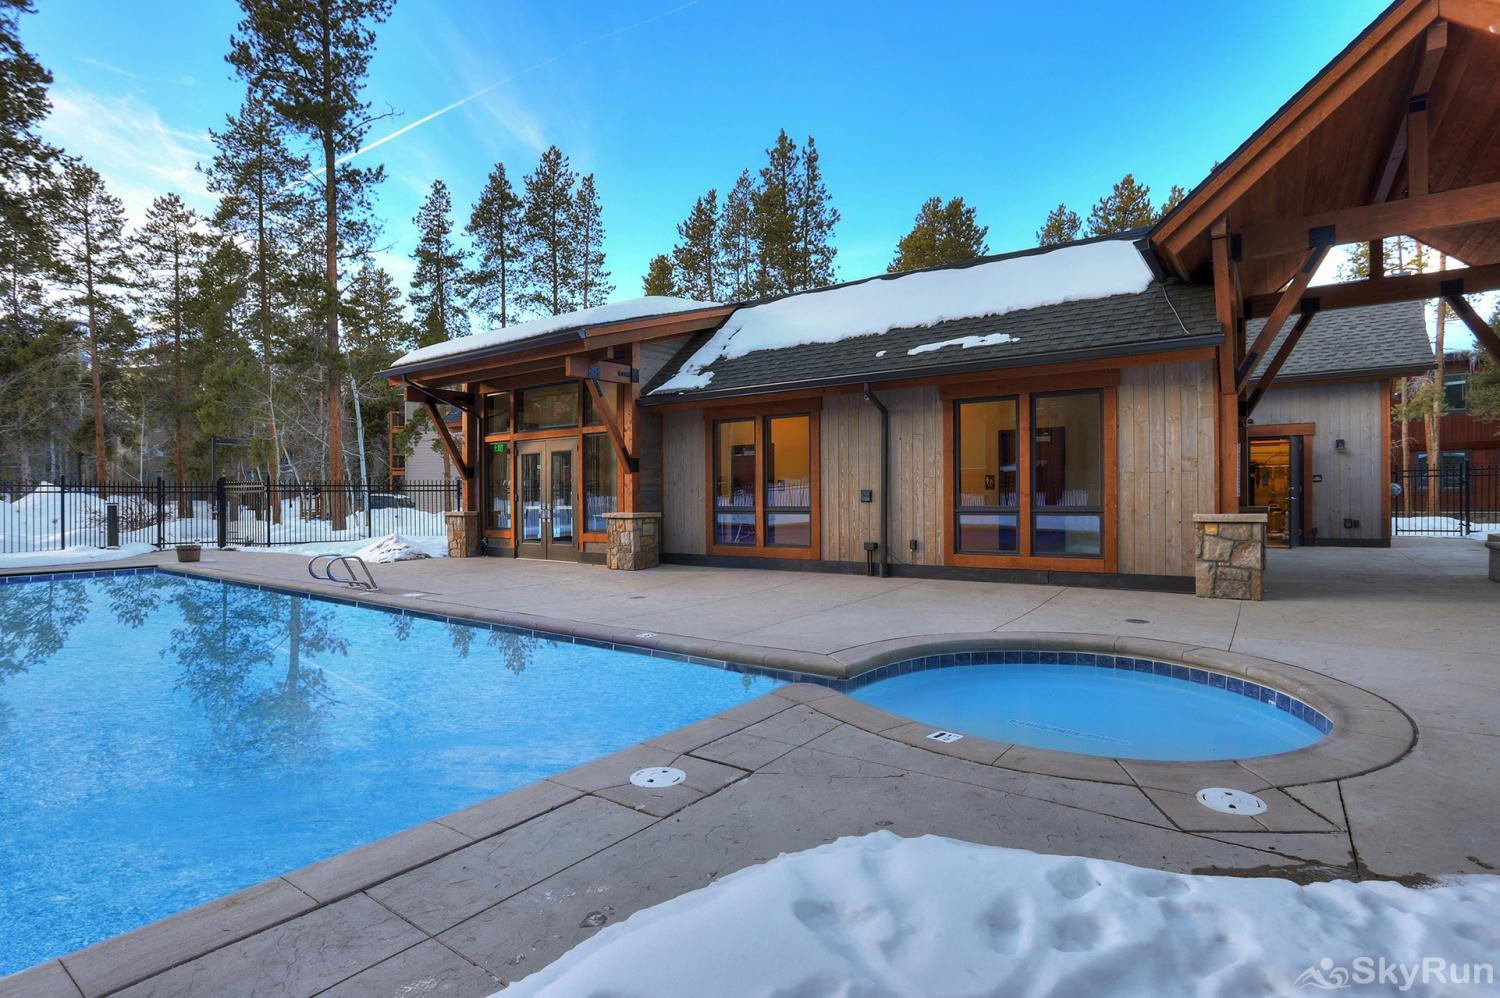 The Lift C11 Guests enjoy access to the Columbine Pool & Hot Tub Complex